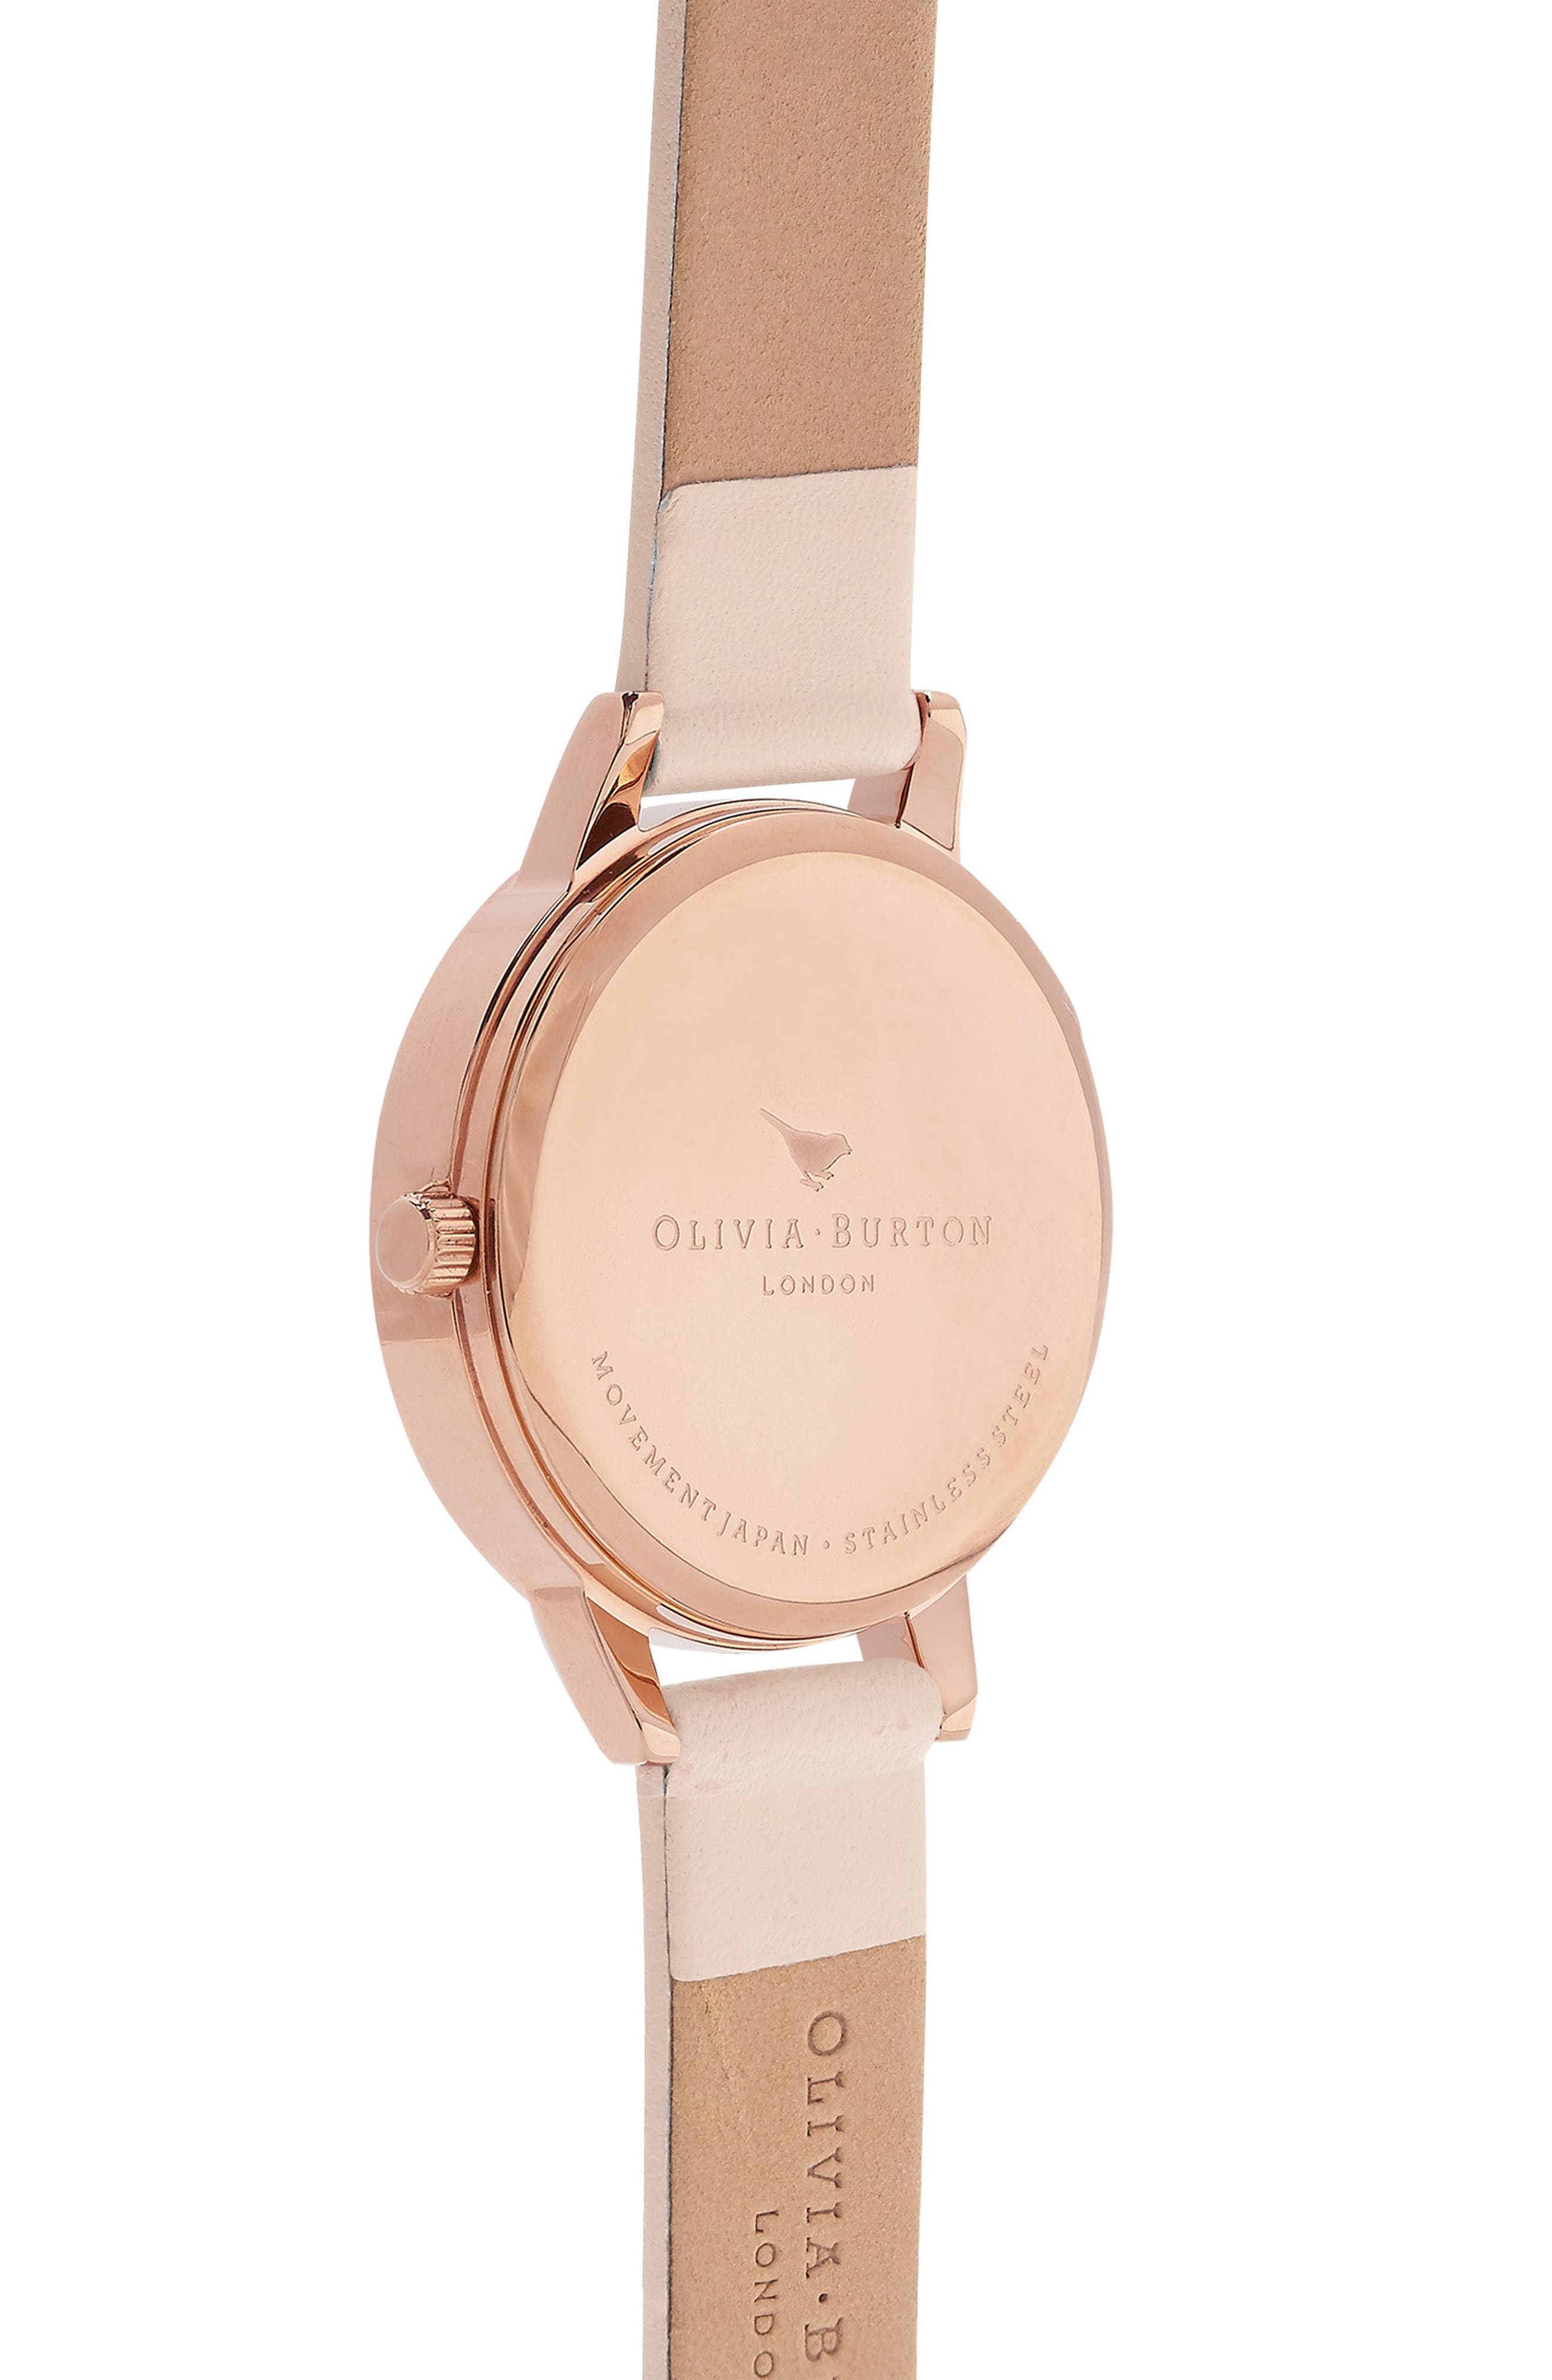 Midi Dial Leather Strap Watch, 30mm,                             Alternate thumbnail 2, color,                             NUDE PEACH/ WHITE/ ROSE GOLD